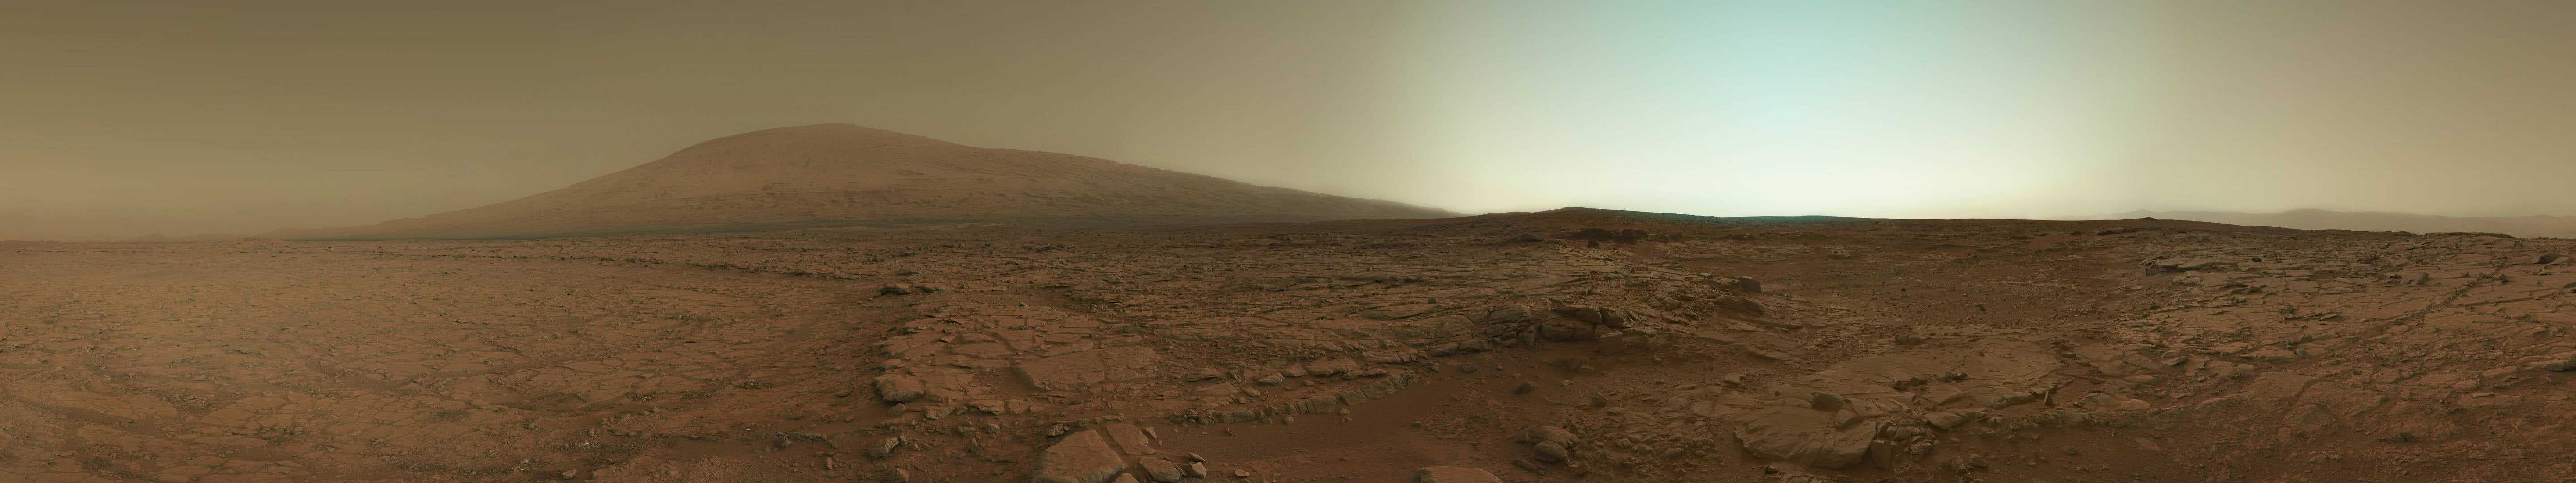 mars curiosity panorama triple monitor wallpaper